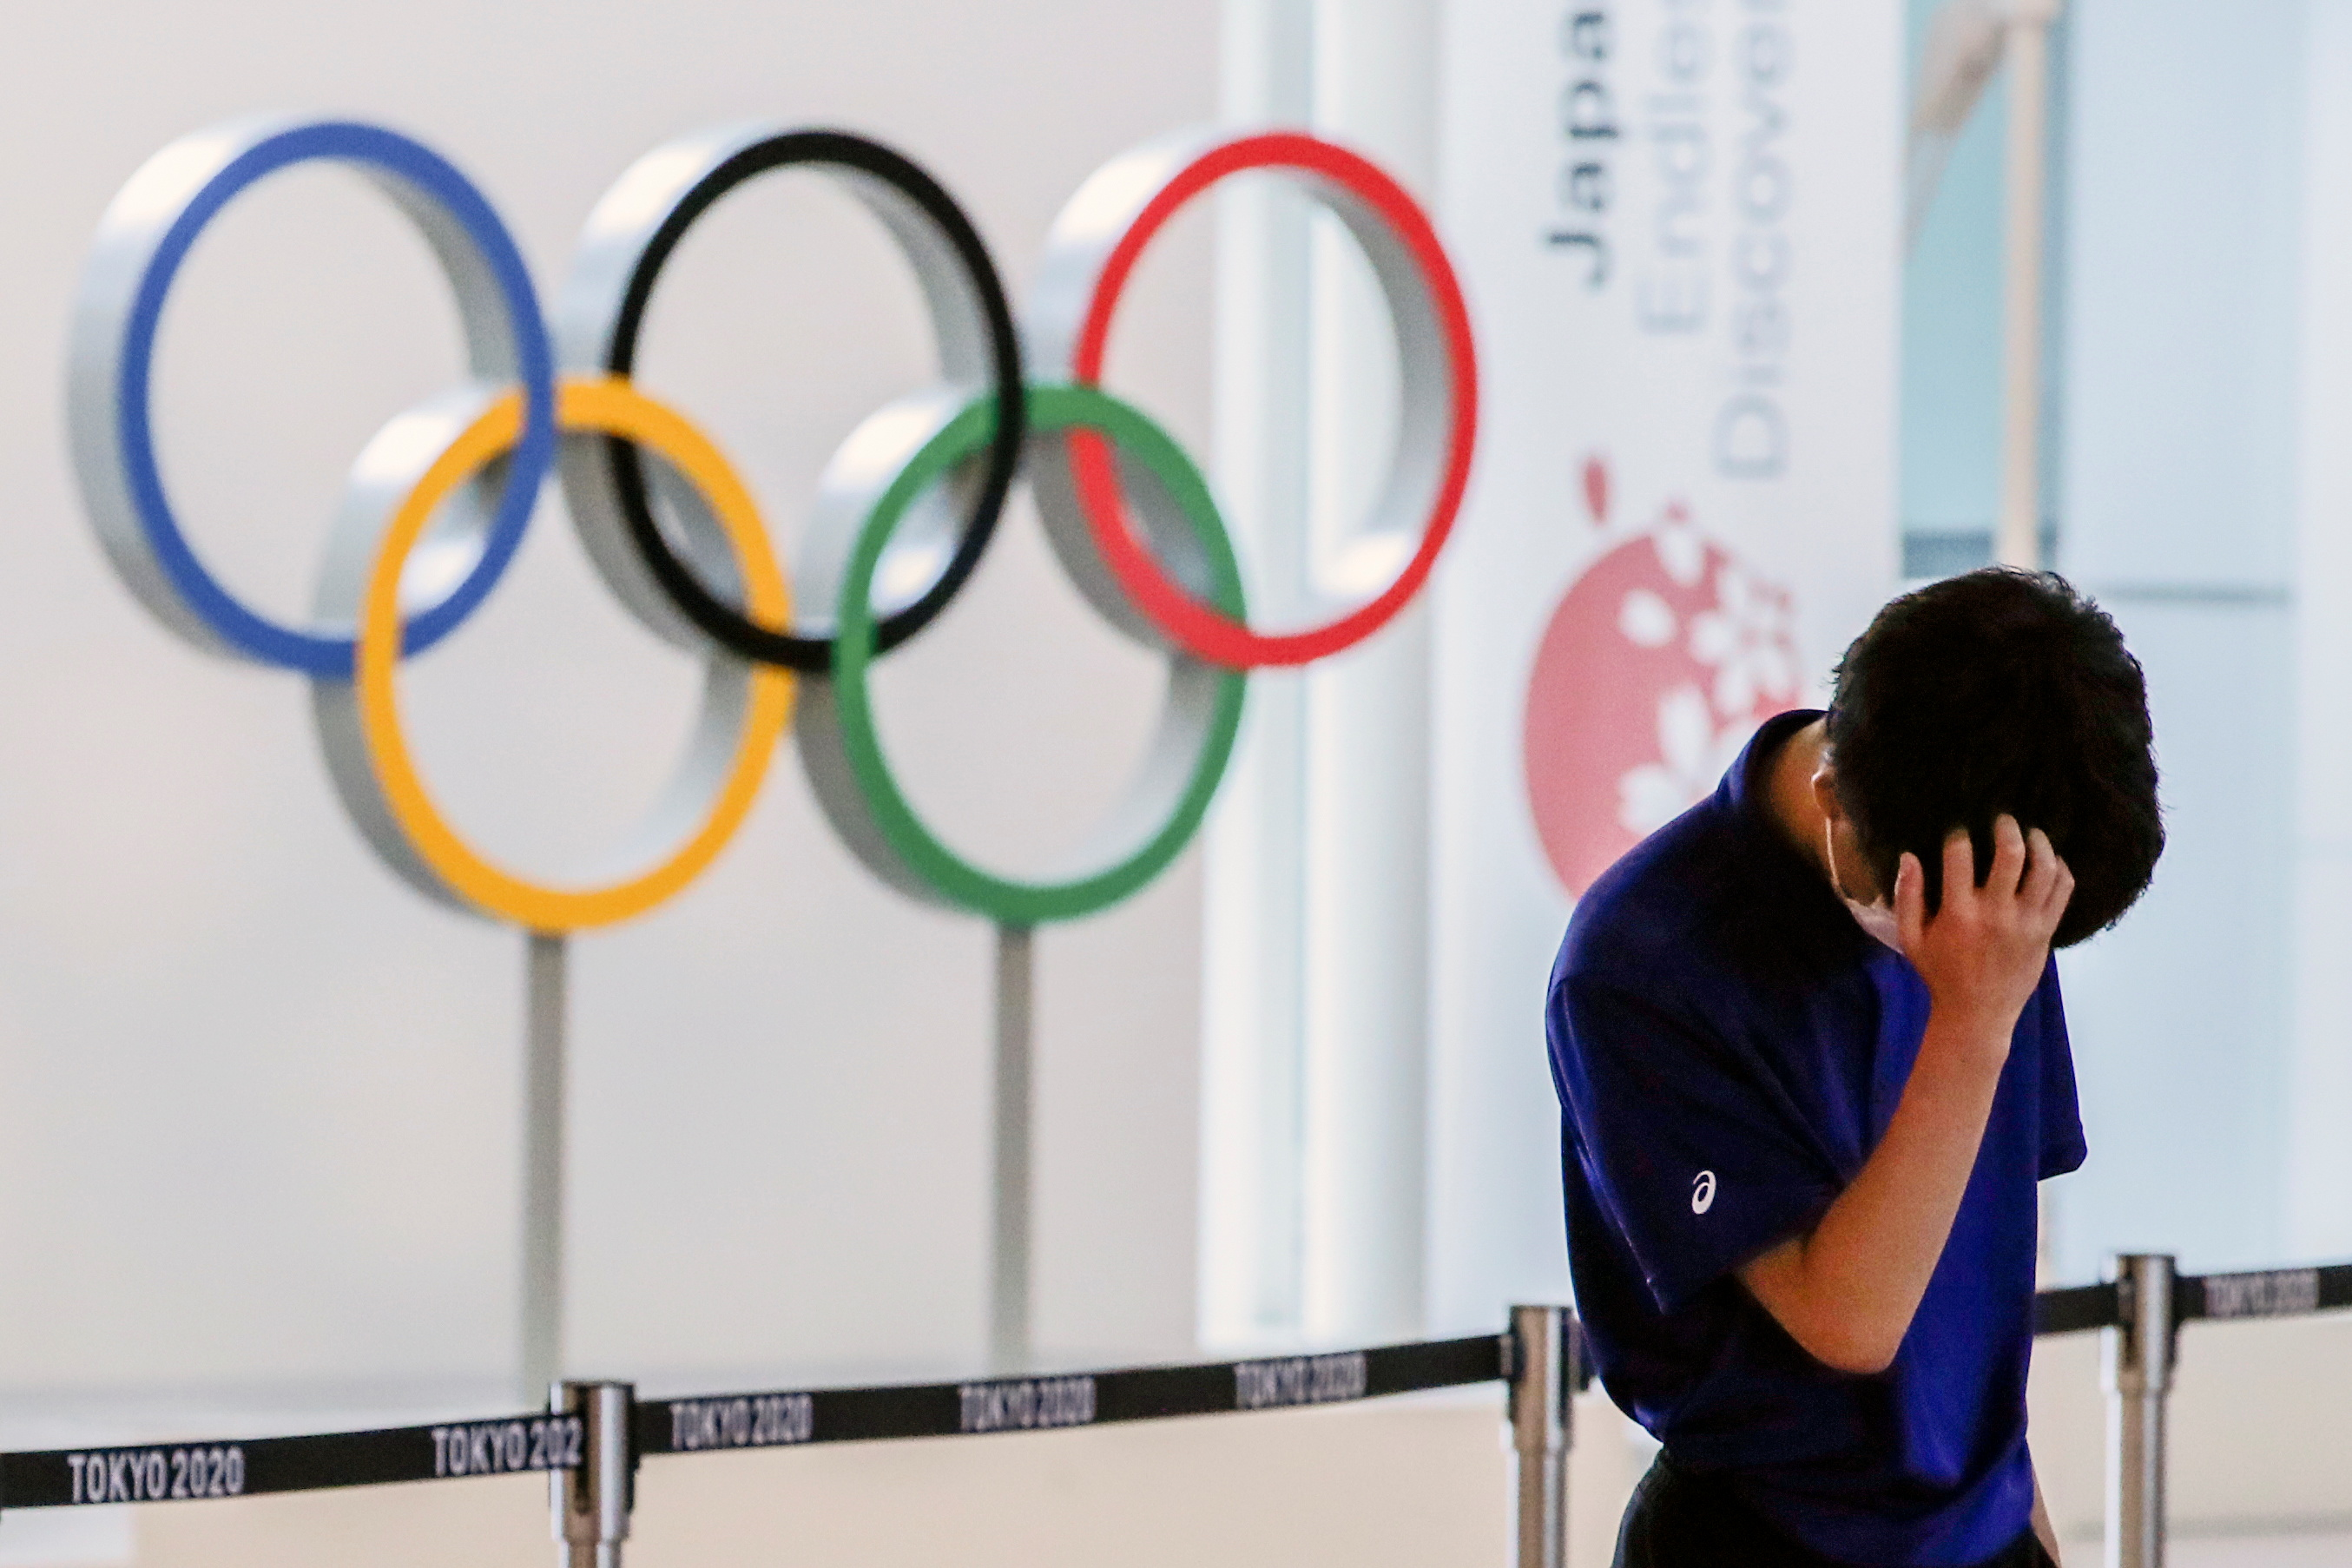 A staff standing in front of Olympic rings reacts while waiting for the arrival of foreign athletes at Haneda Airport ahead of Tokyo 2020 Olympic Games, in Tokyo, Japan July 8, 2021. REUTERS/Kim Kyung-Hoon